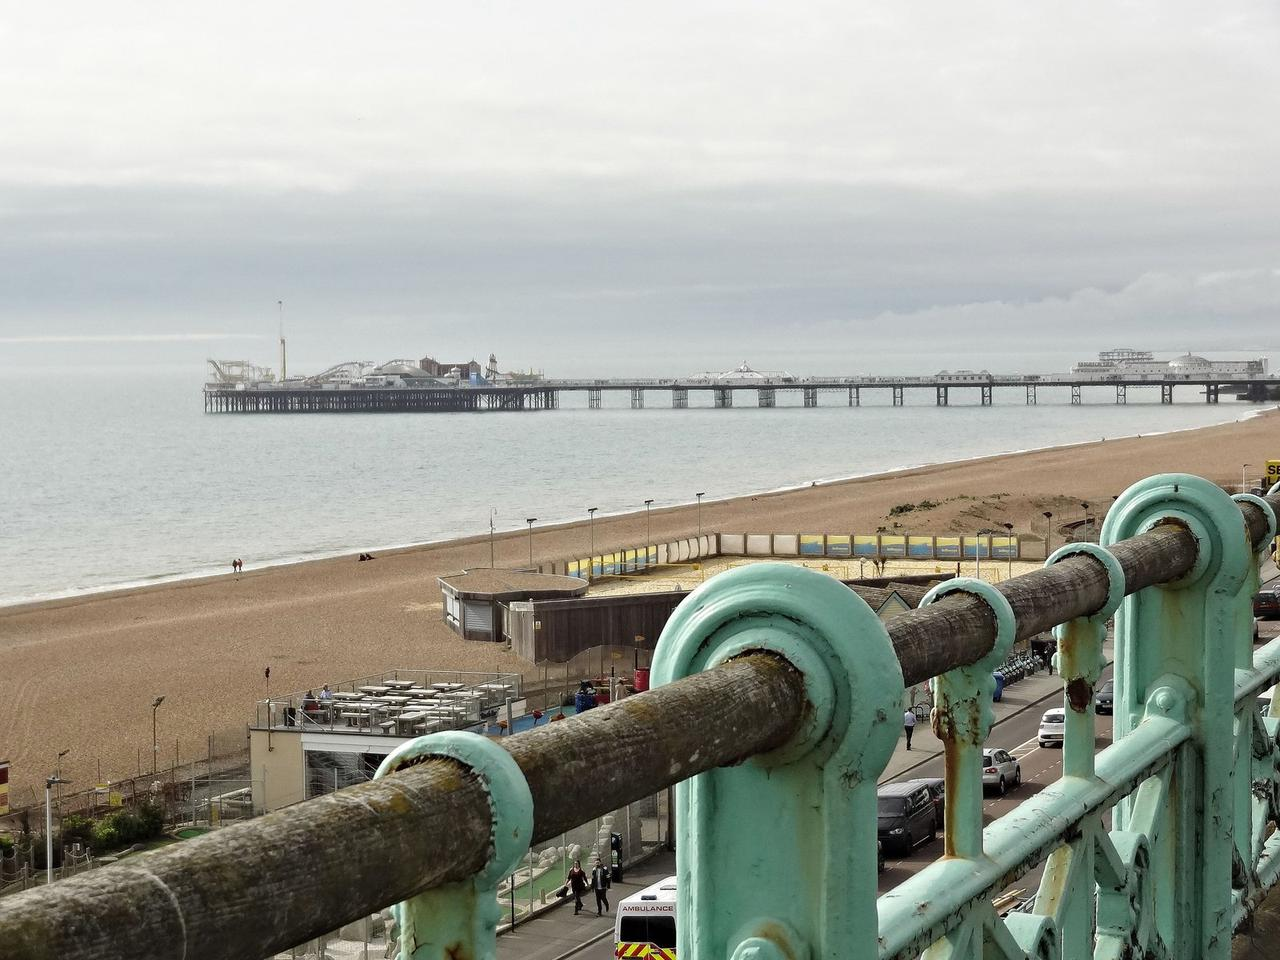 Darling-by-the-Seaside, Brighton & Hove Images - 15